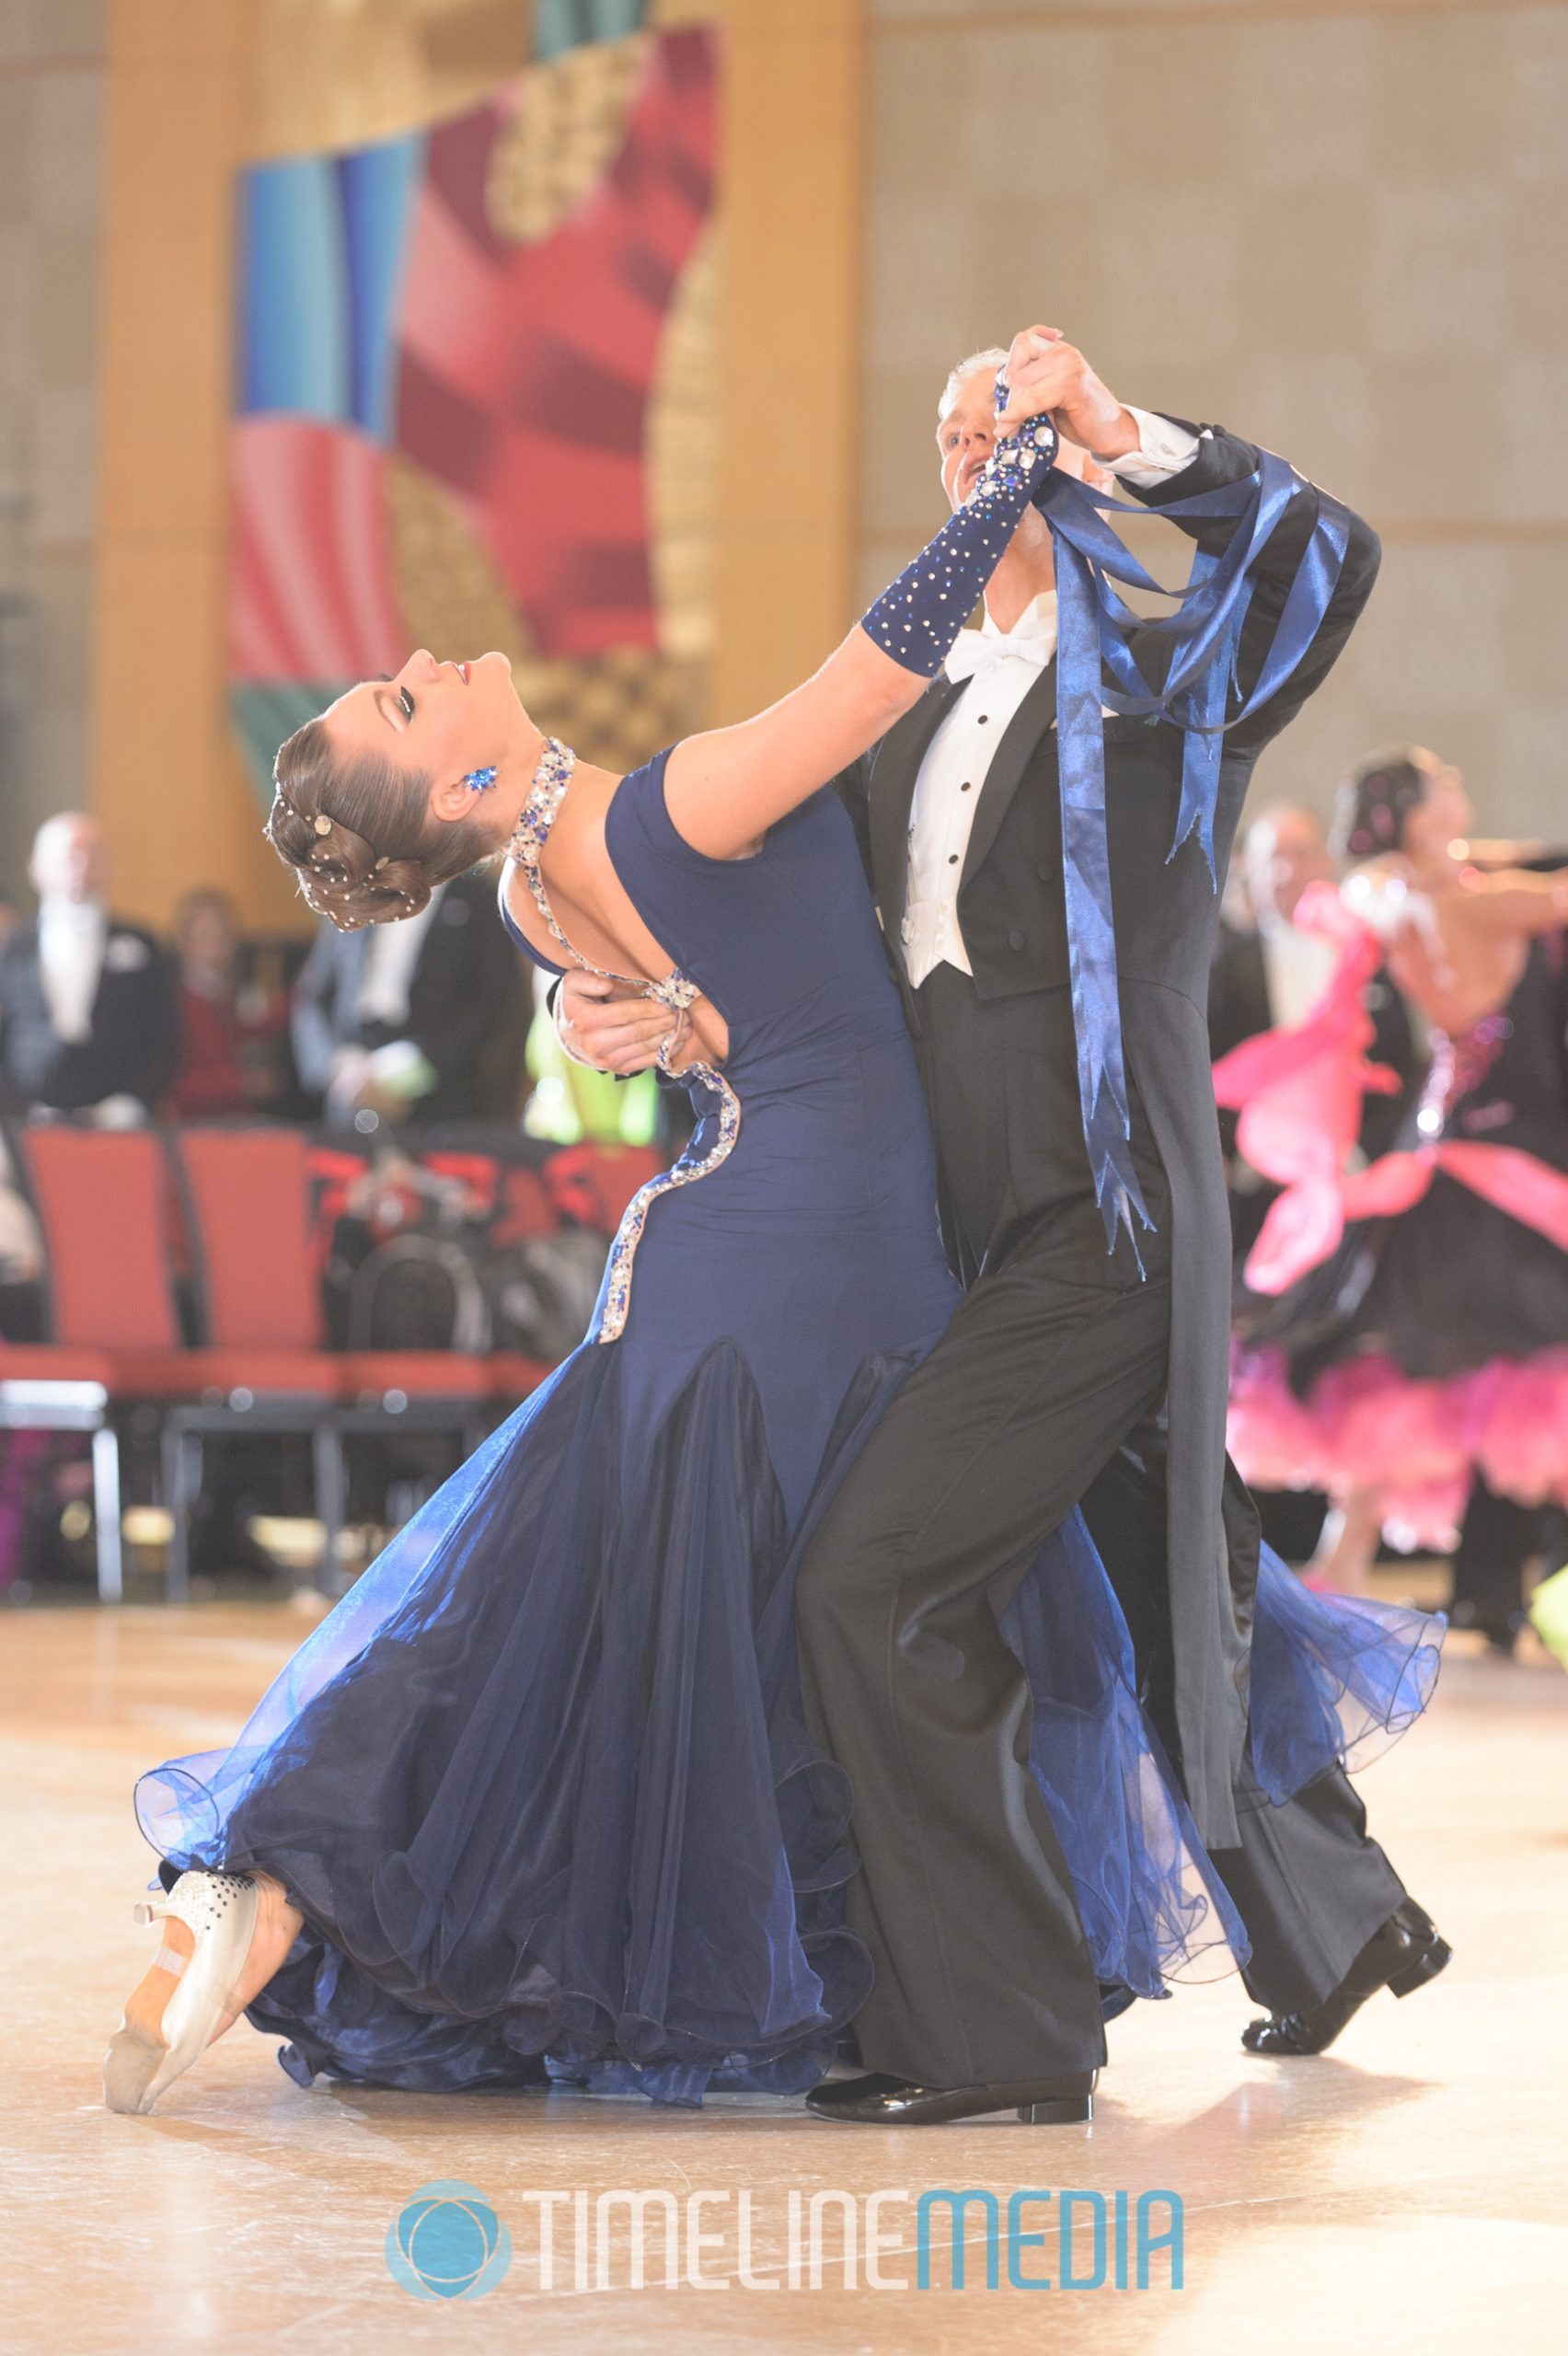 USA Dance couple compete in Standard dancing ©TimeLine Media